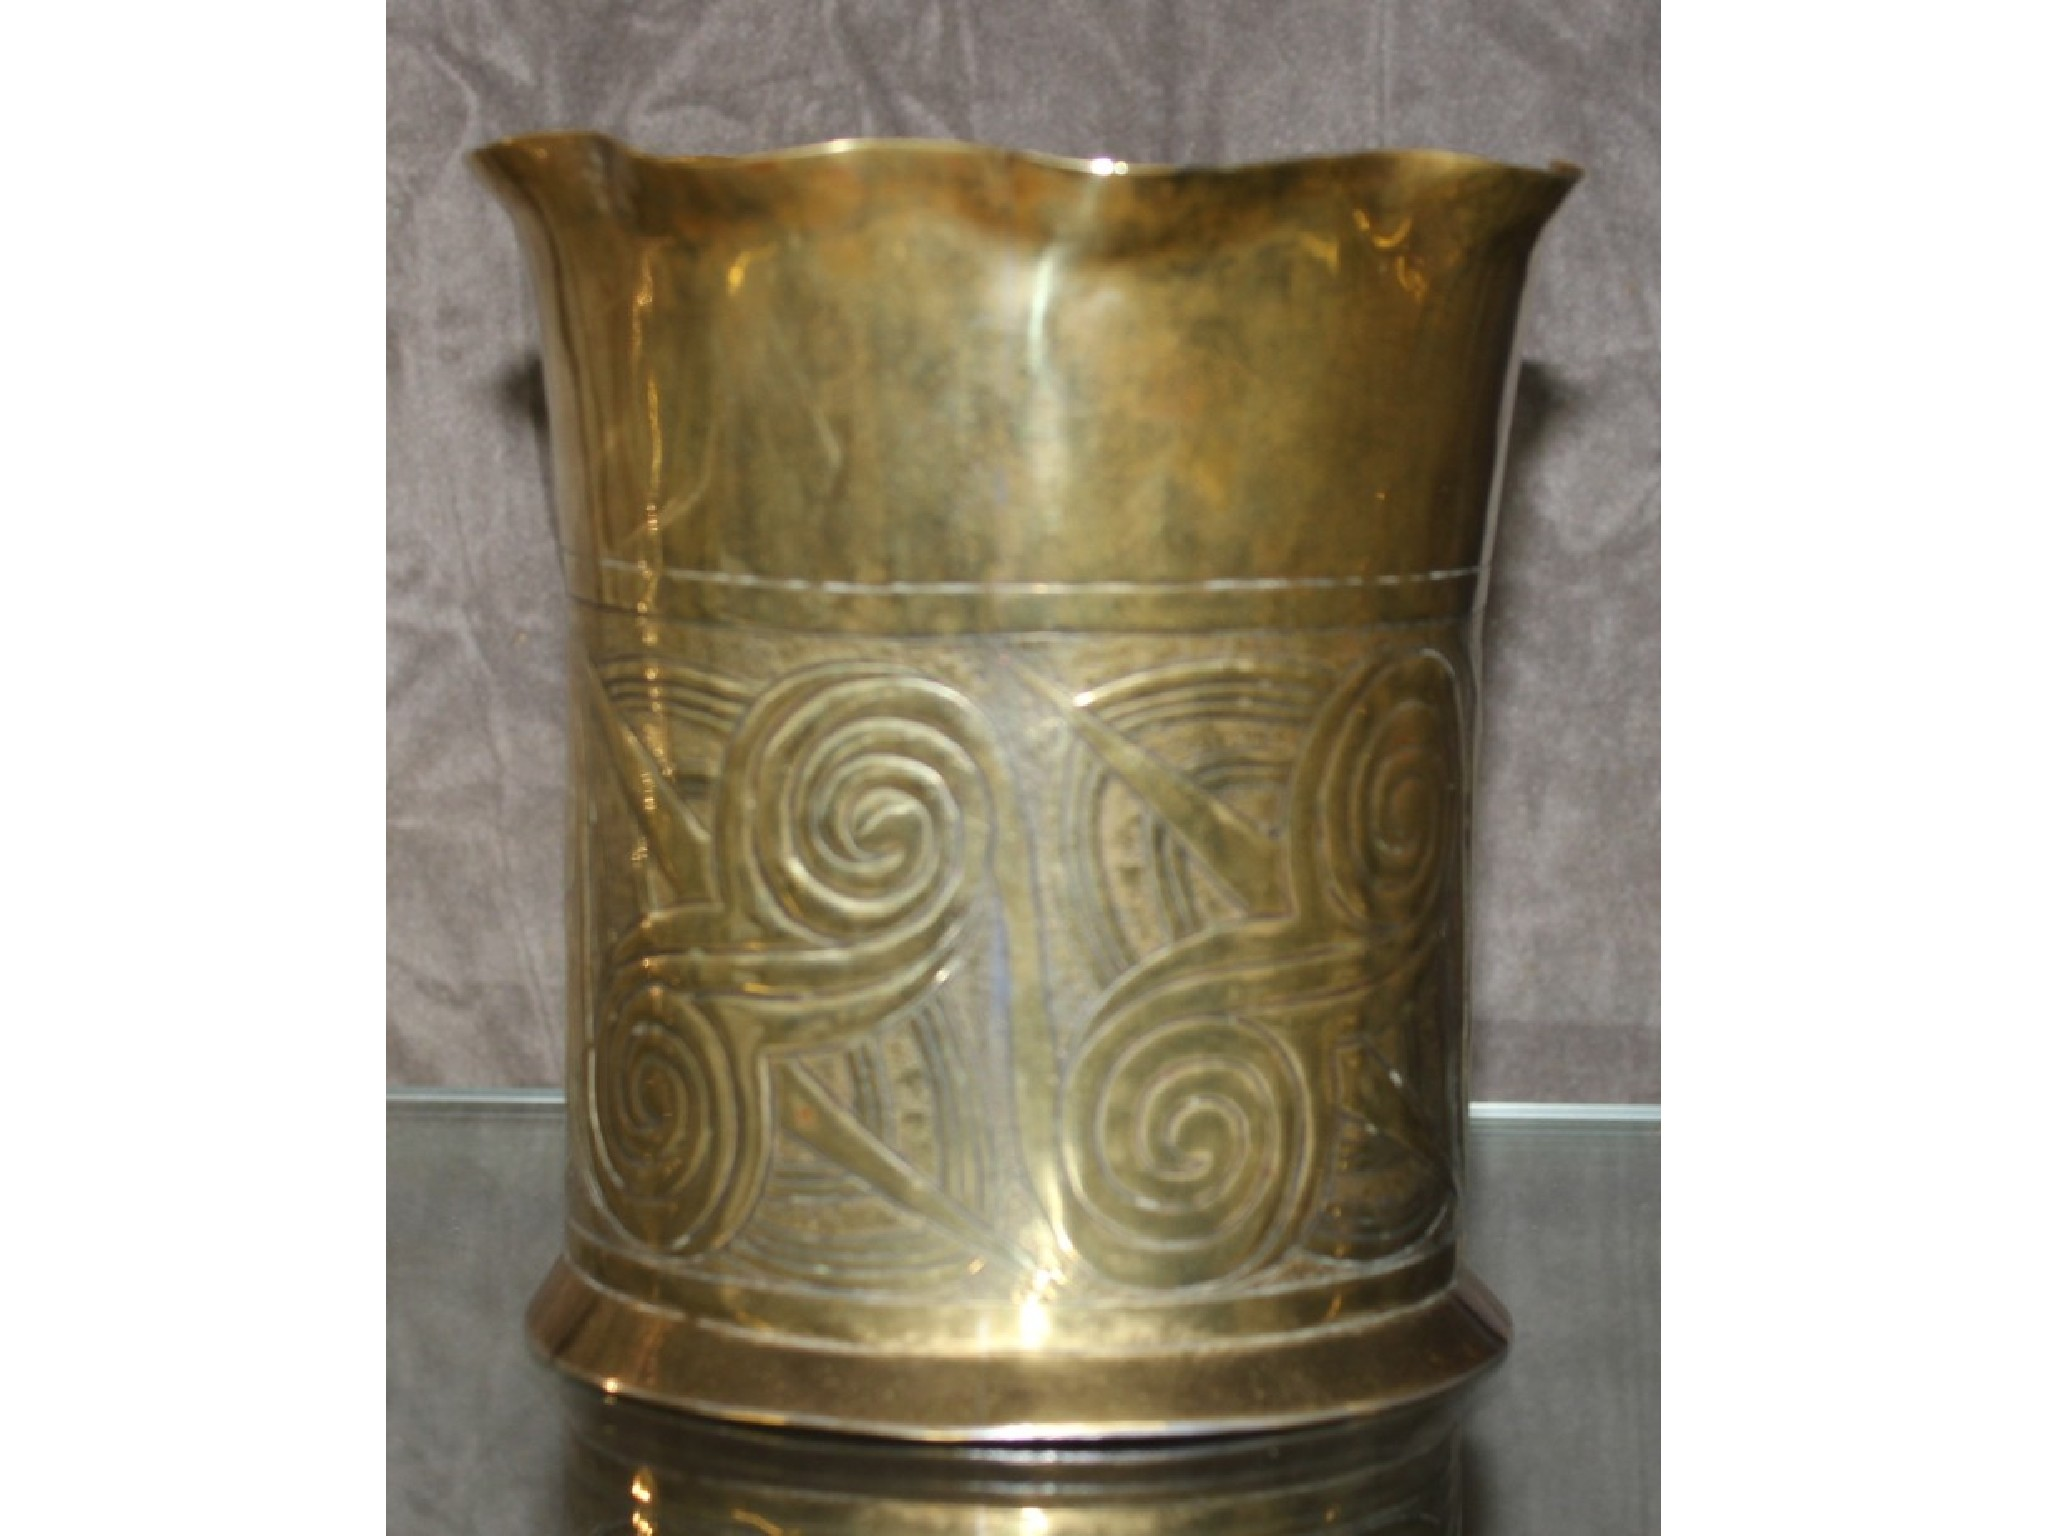 An Arts and Crafts hammered brass vase with a Celtic design, by Keswick School of Industrial Arts, marked KSIA to the base